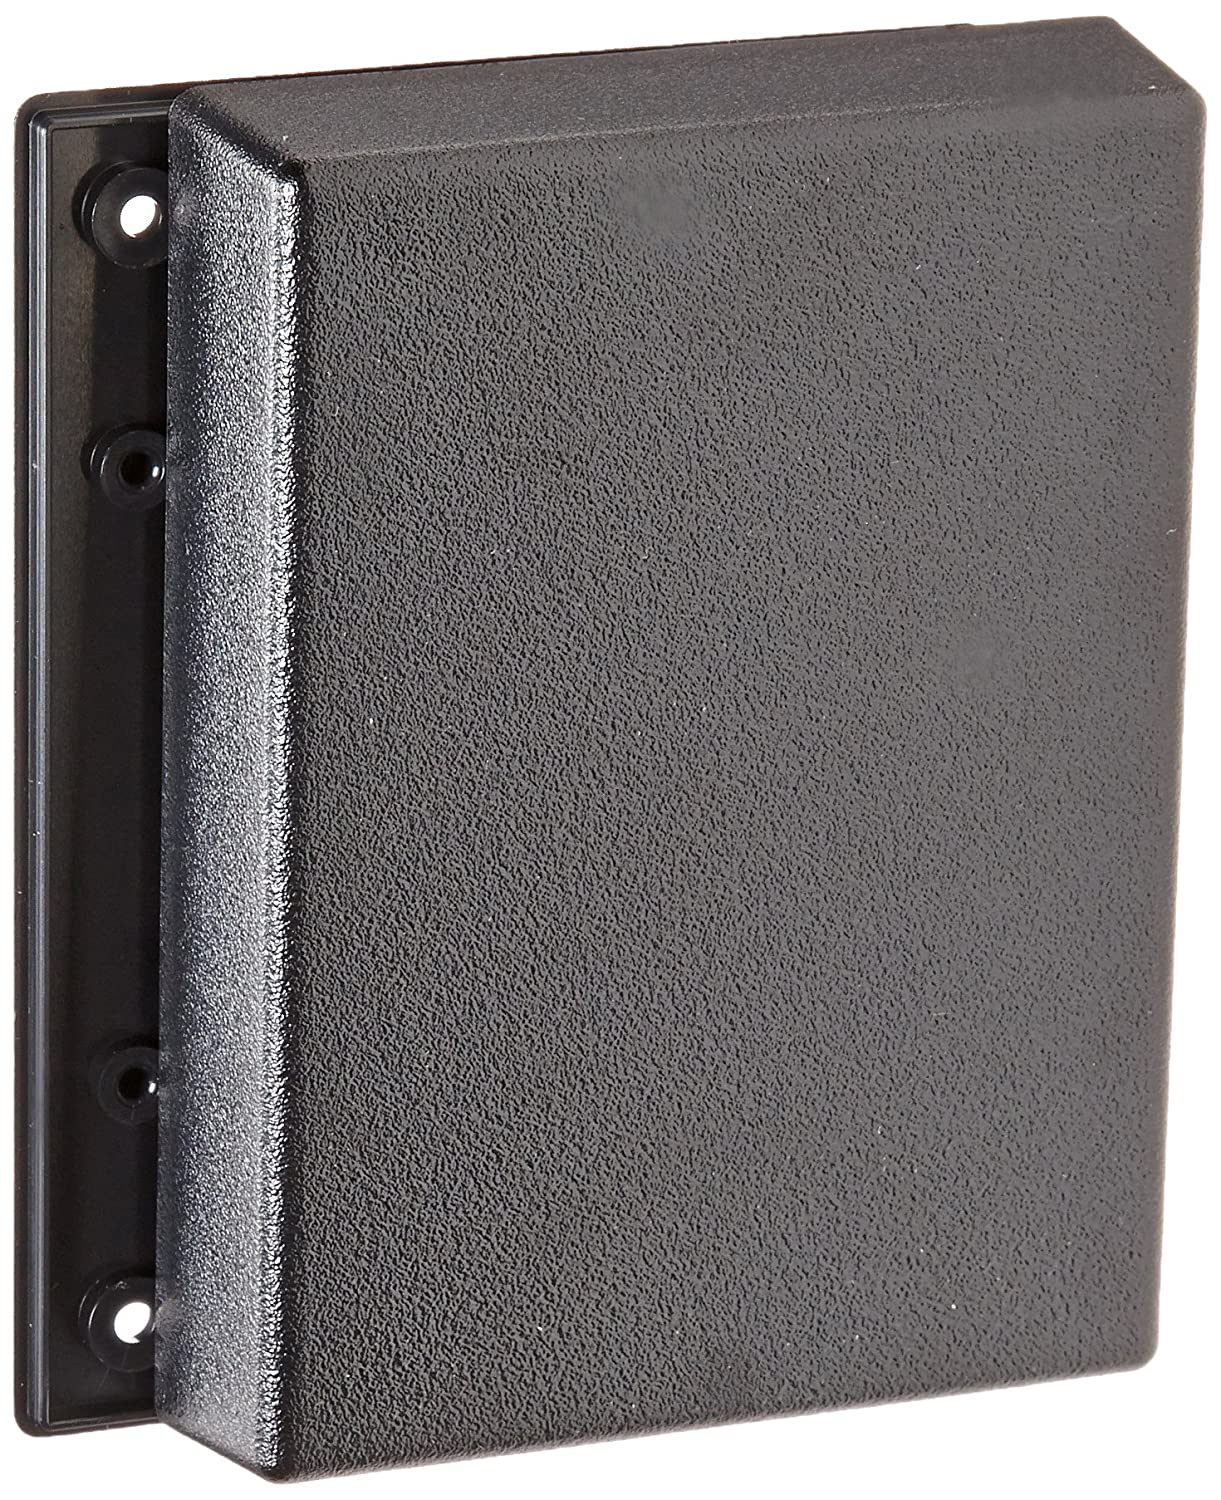 Serpac 031 ABS Plastic Enclosure 4 3 8 Length x 3 1 4 Width x 0.9 Height Black